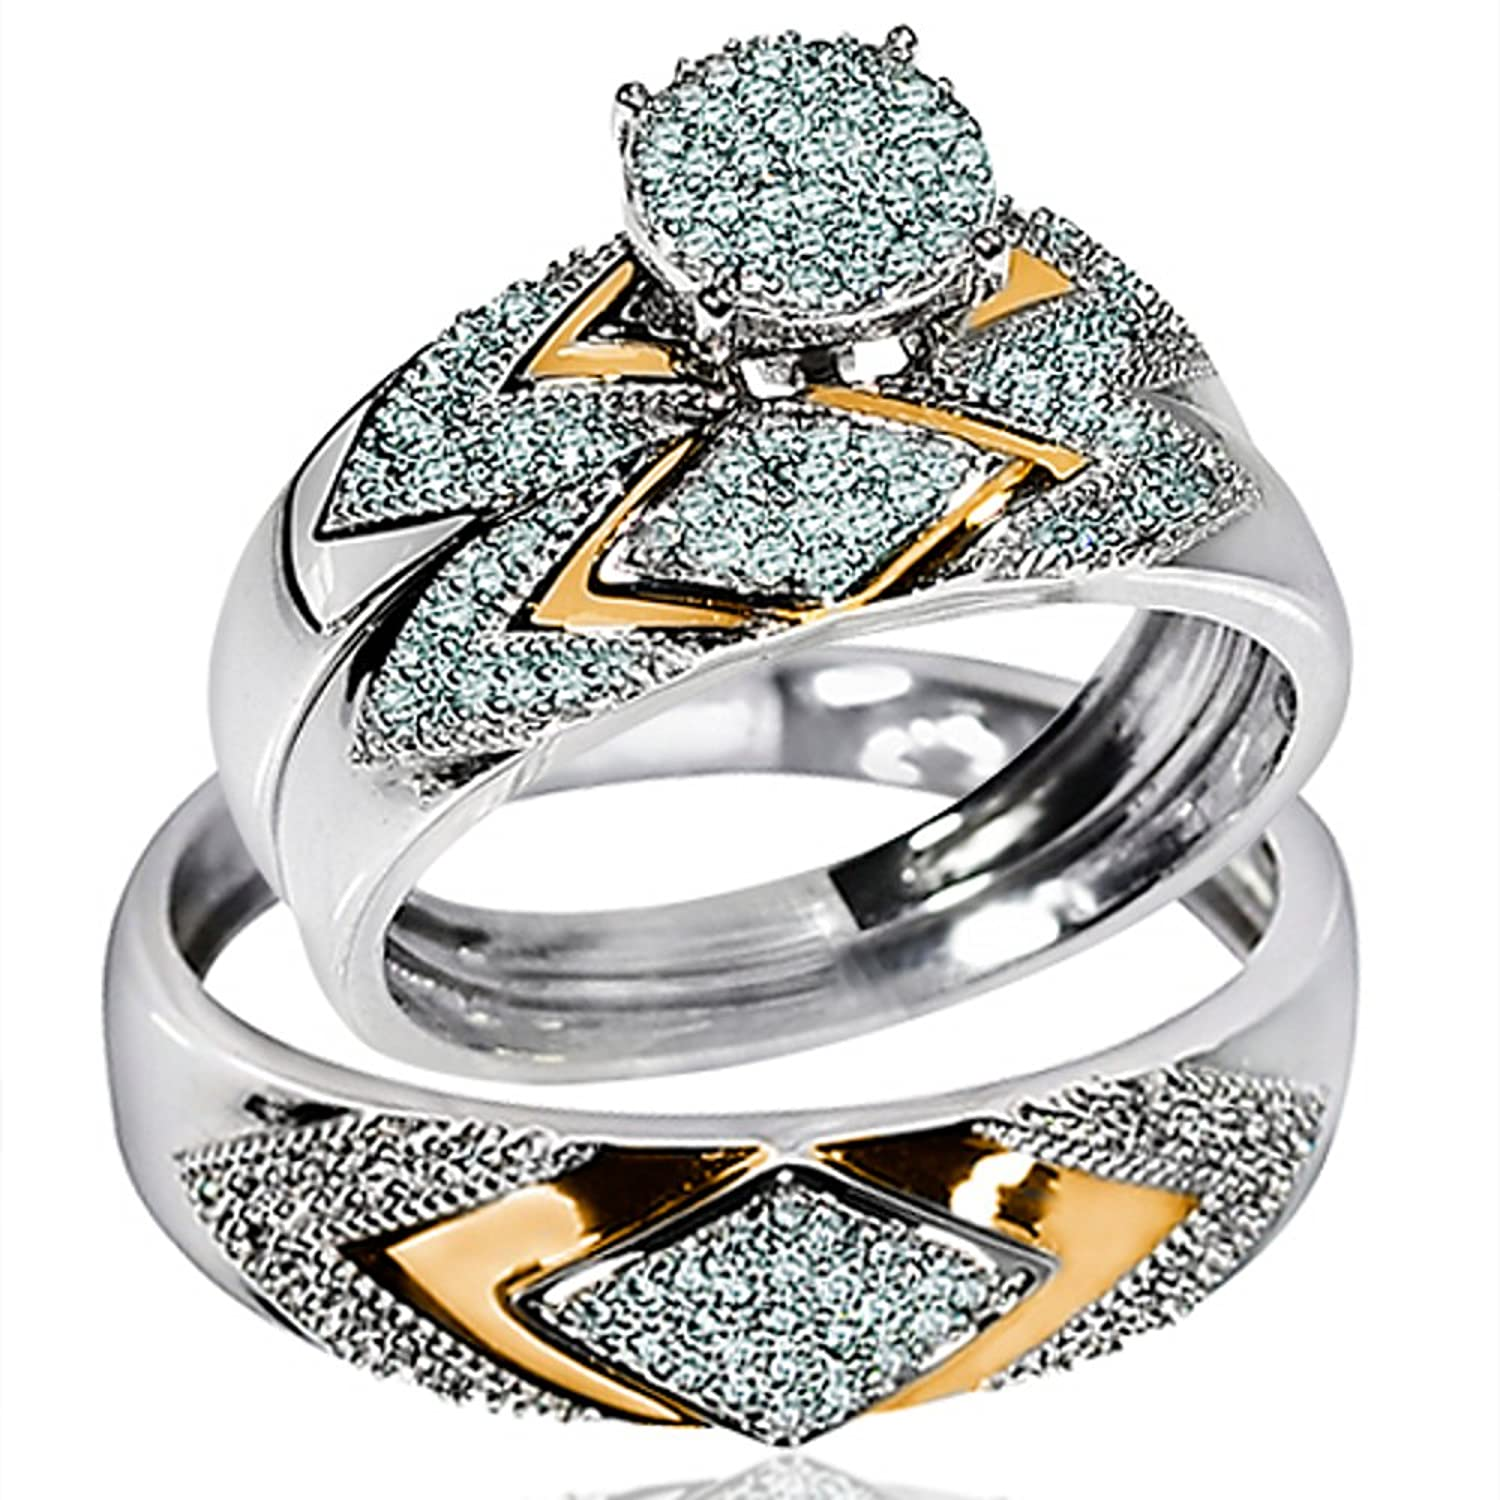 rings best diamond blog in your chennai wedding top to buy jewellery stores